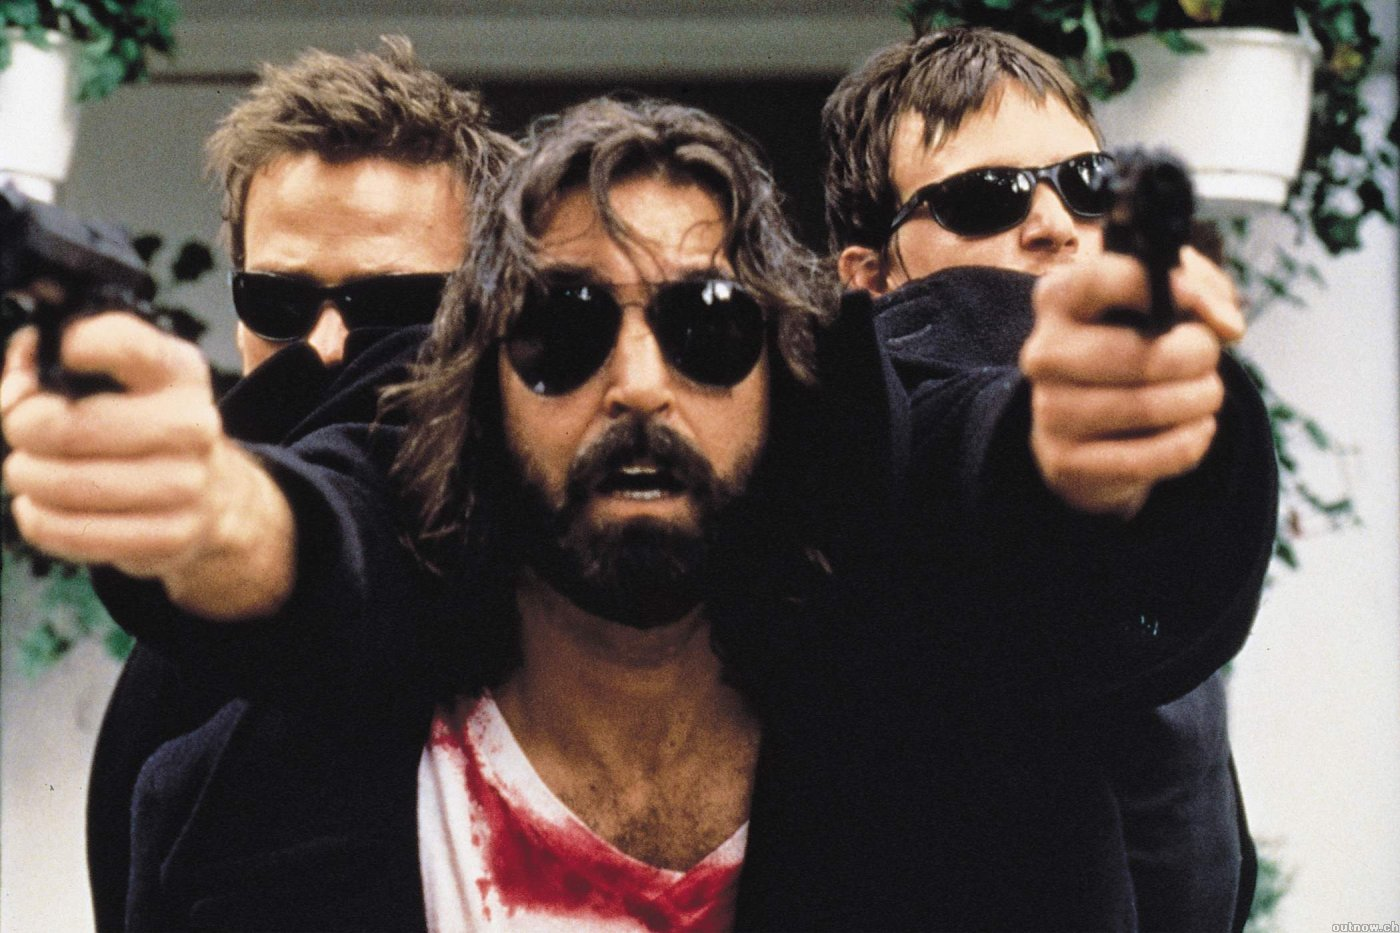 Movie - The Boondock Saints  - Boondock Saints Wallpaper